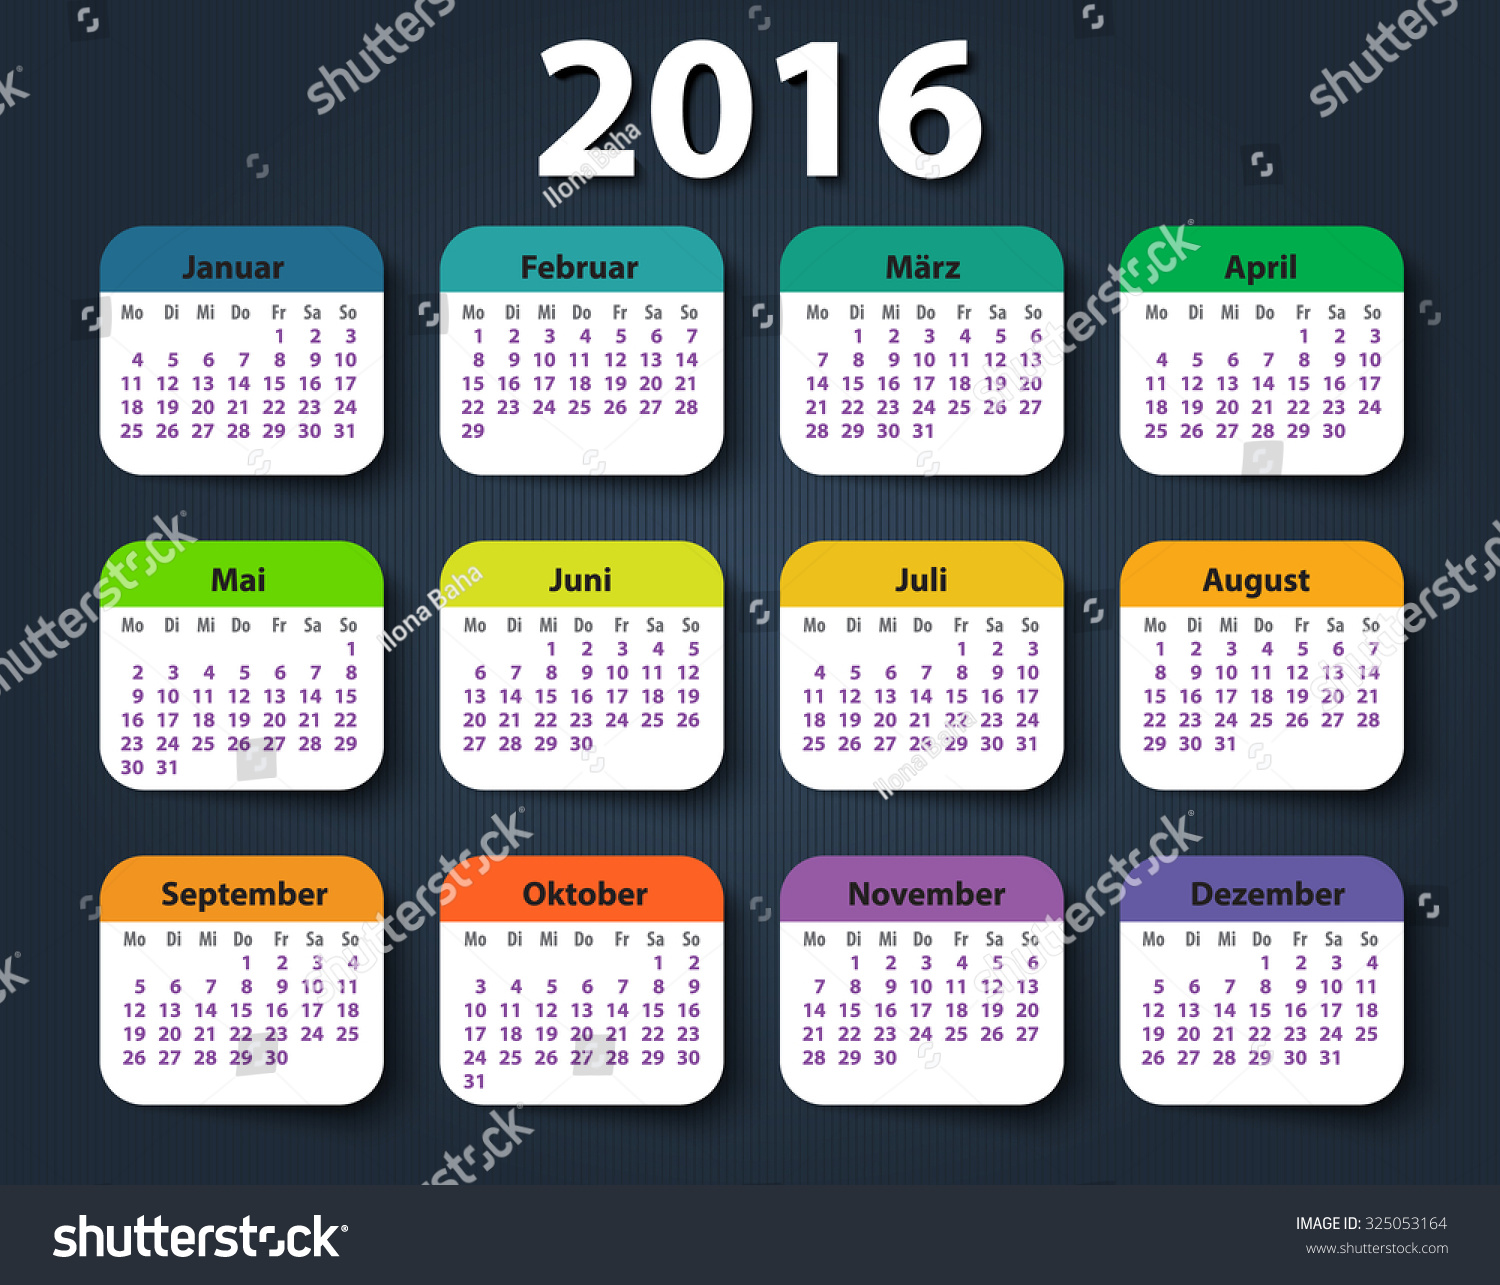 Year Calendar Starting : Calendar year german week starting stock vector